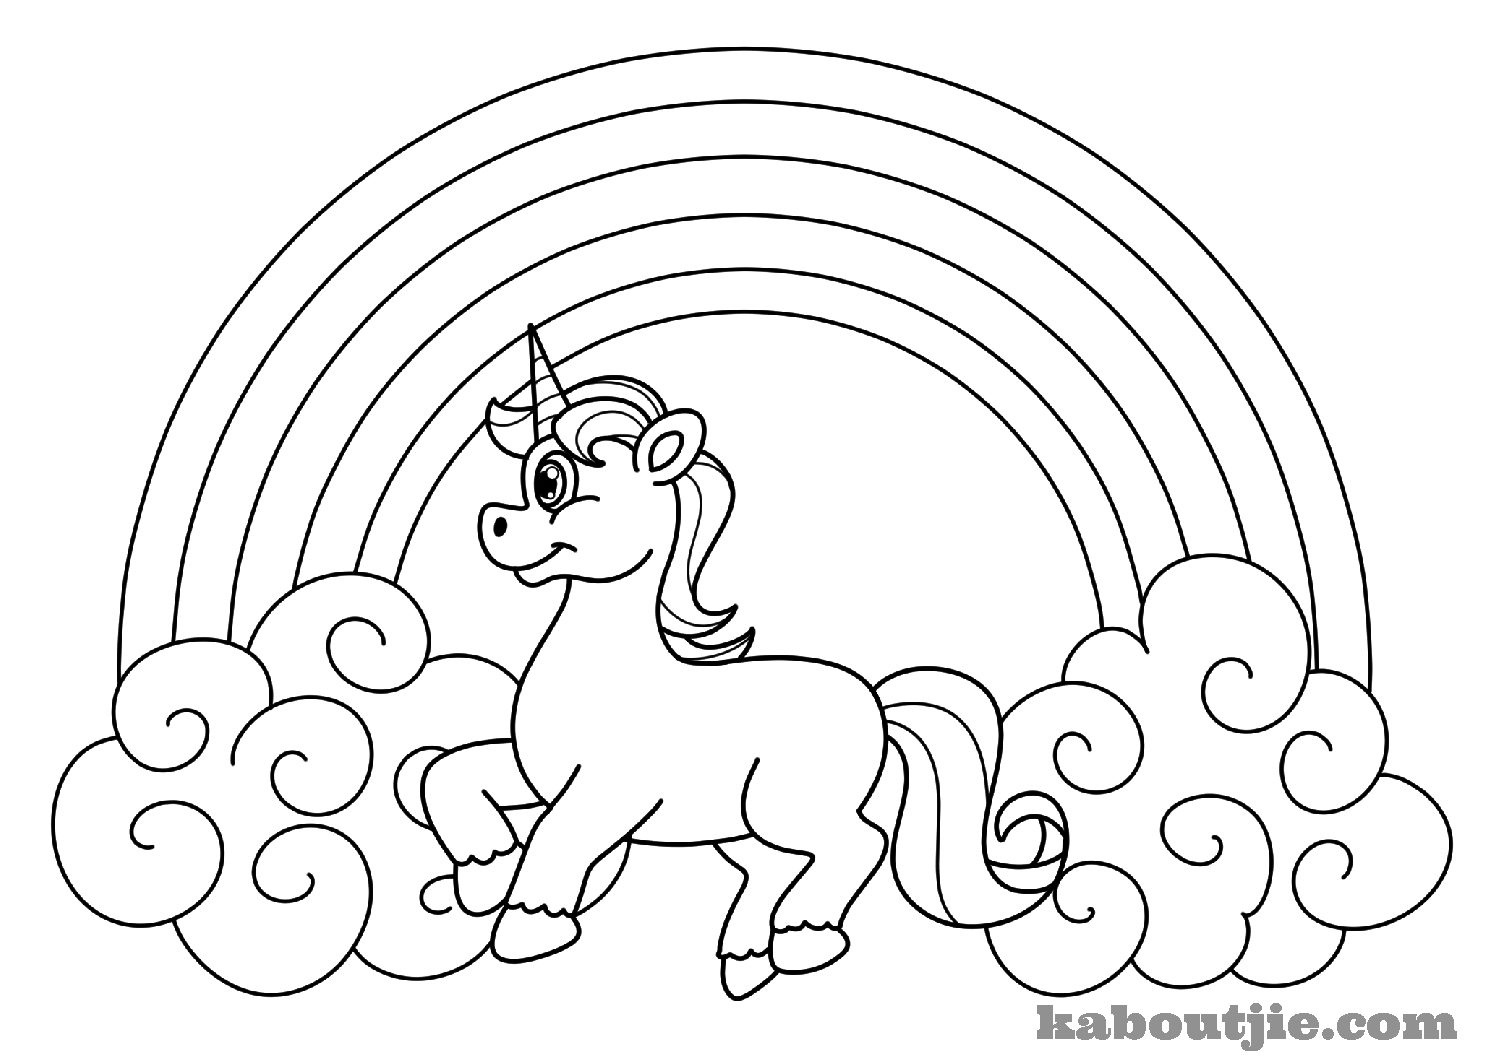 Coloring: Awesome Unicorn Coloring Page Printable Picture Inspirations. - Free Printable Unicorn Coloring Pages